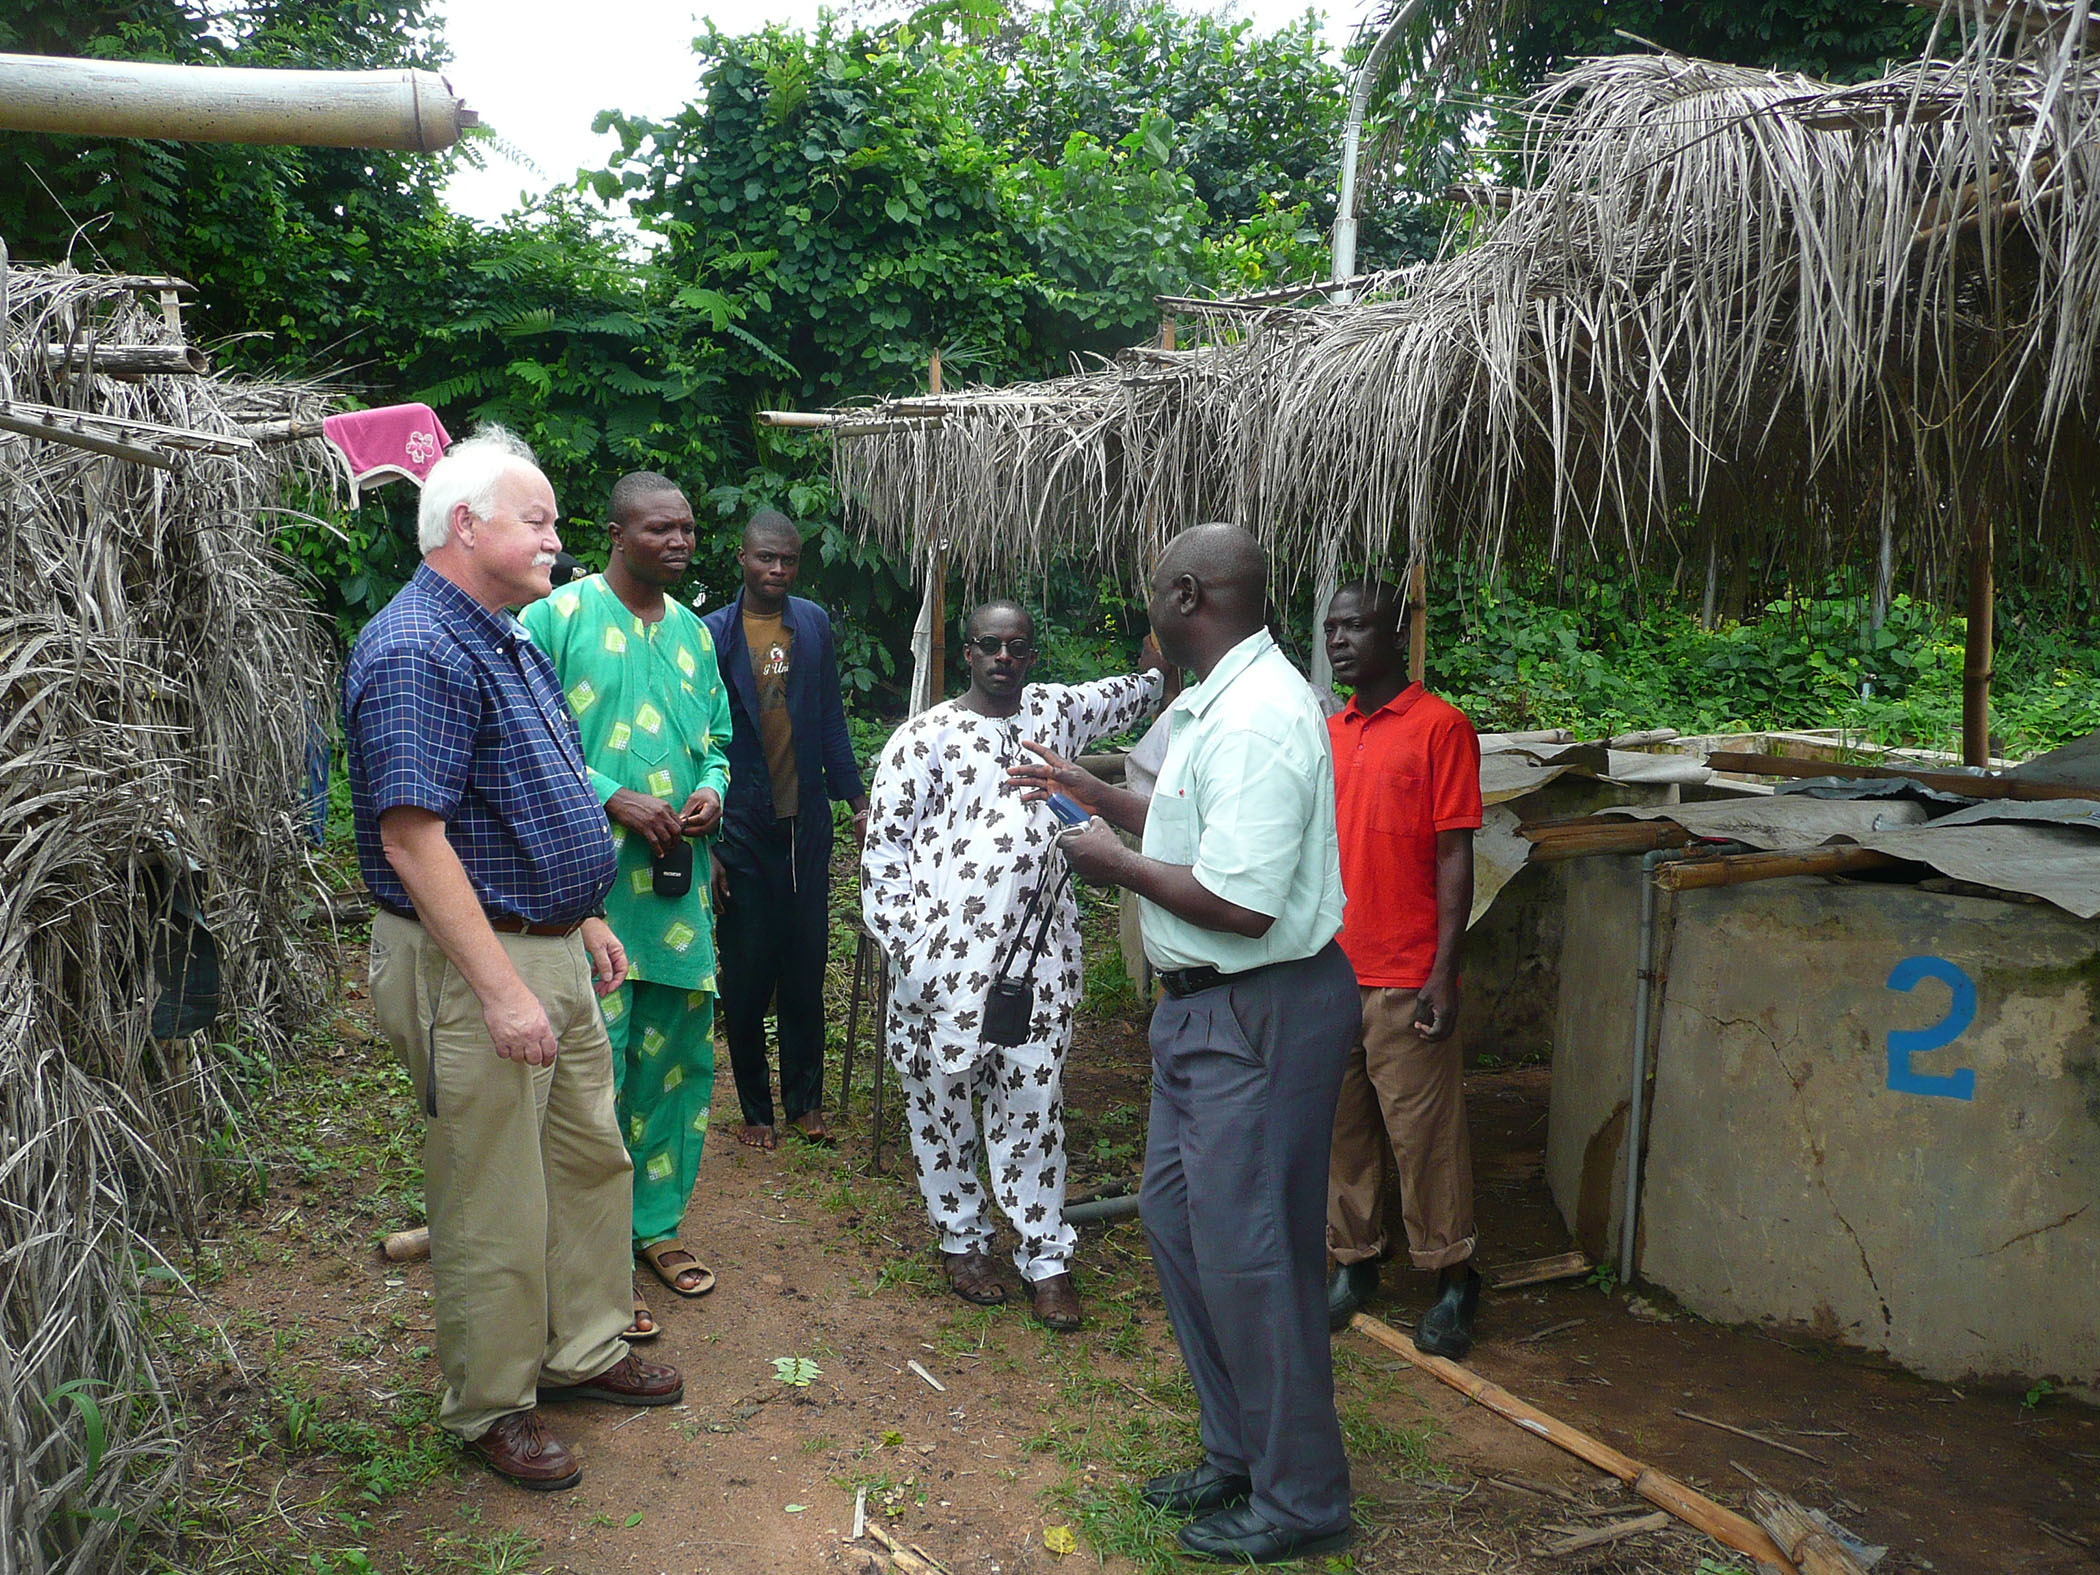 Msu veterinary expert shares expertise in nigeria for Dean clinic fish hatchery